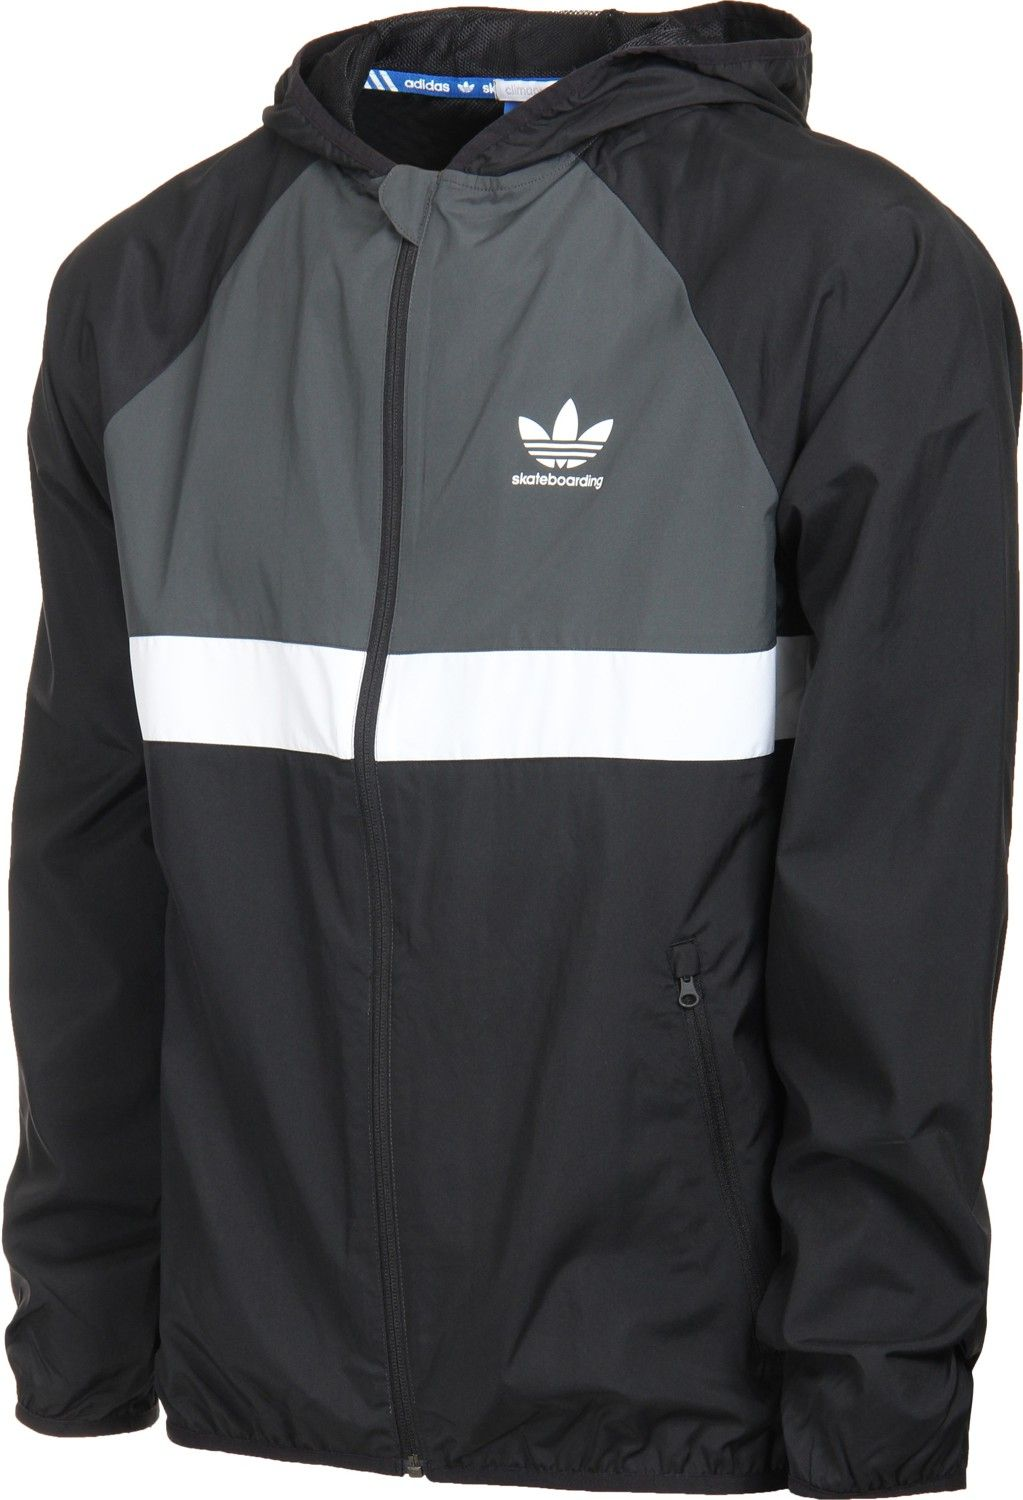 Adidas ADV Packable Windbreaker black Free Shipping